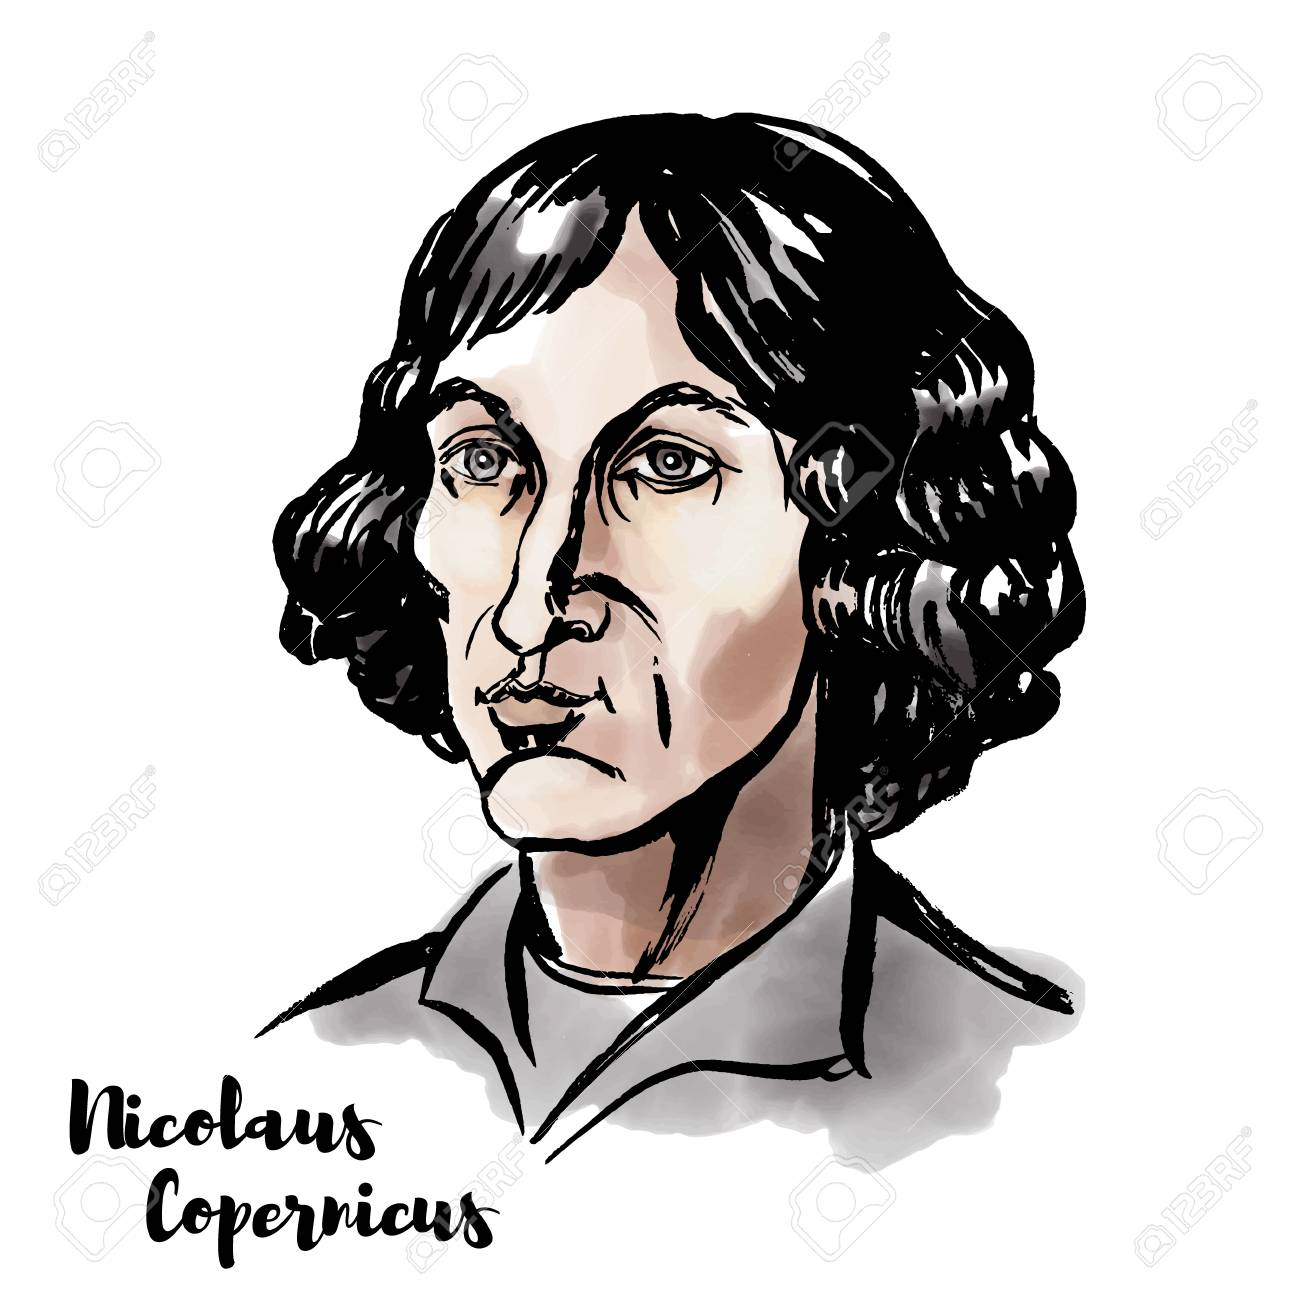 Nicolaus Copernicus watercolor vector portrait with ink contours. Renaissance-era mathematician and astronomer who formulated a model of the universe. - 110435003